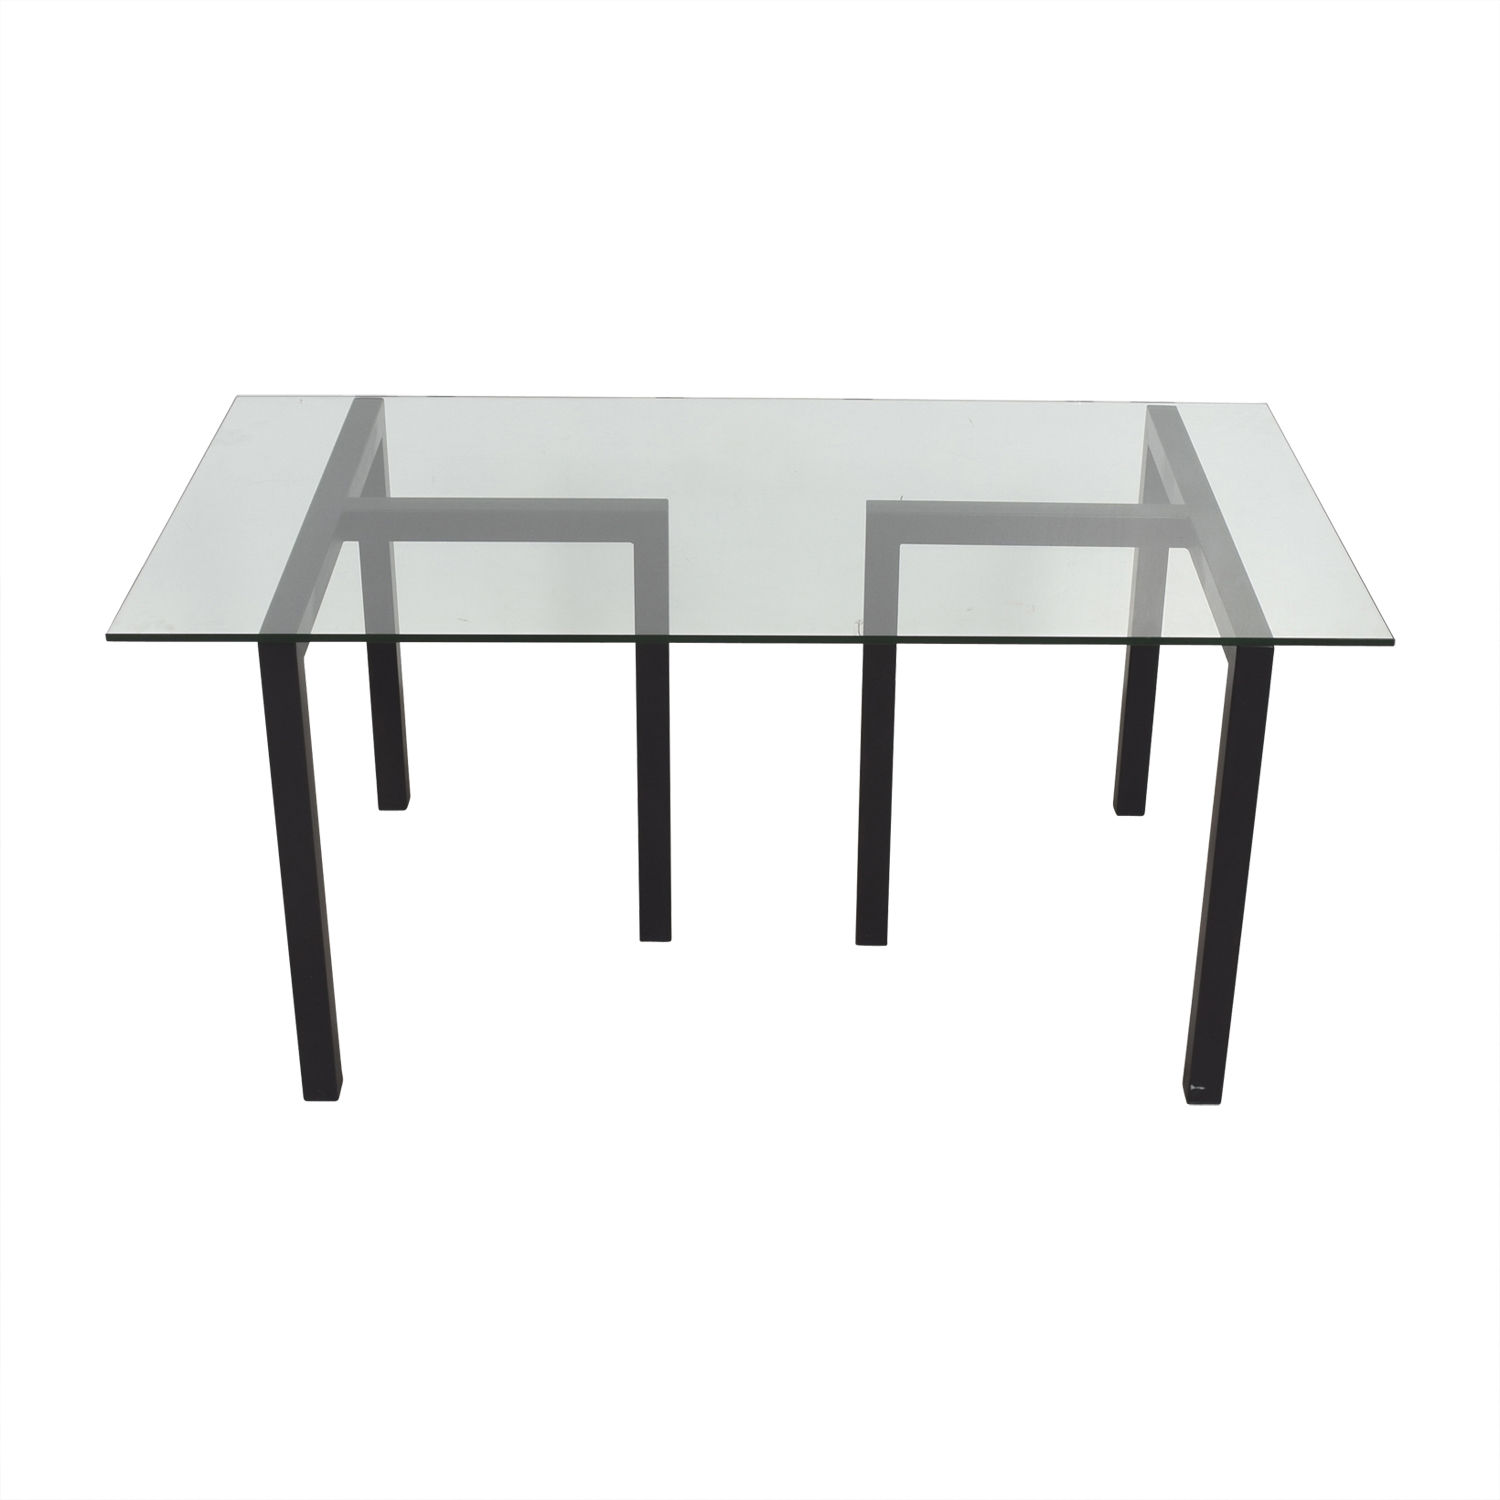 buy Crate & Barrel Tempered Glass Table Crate & Barrel